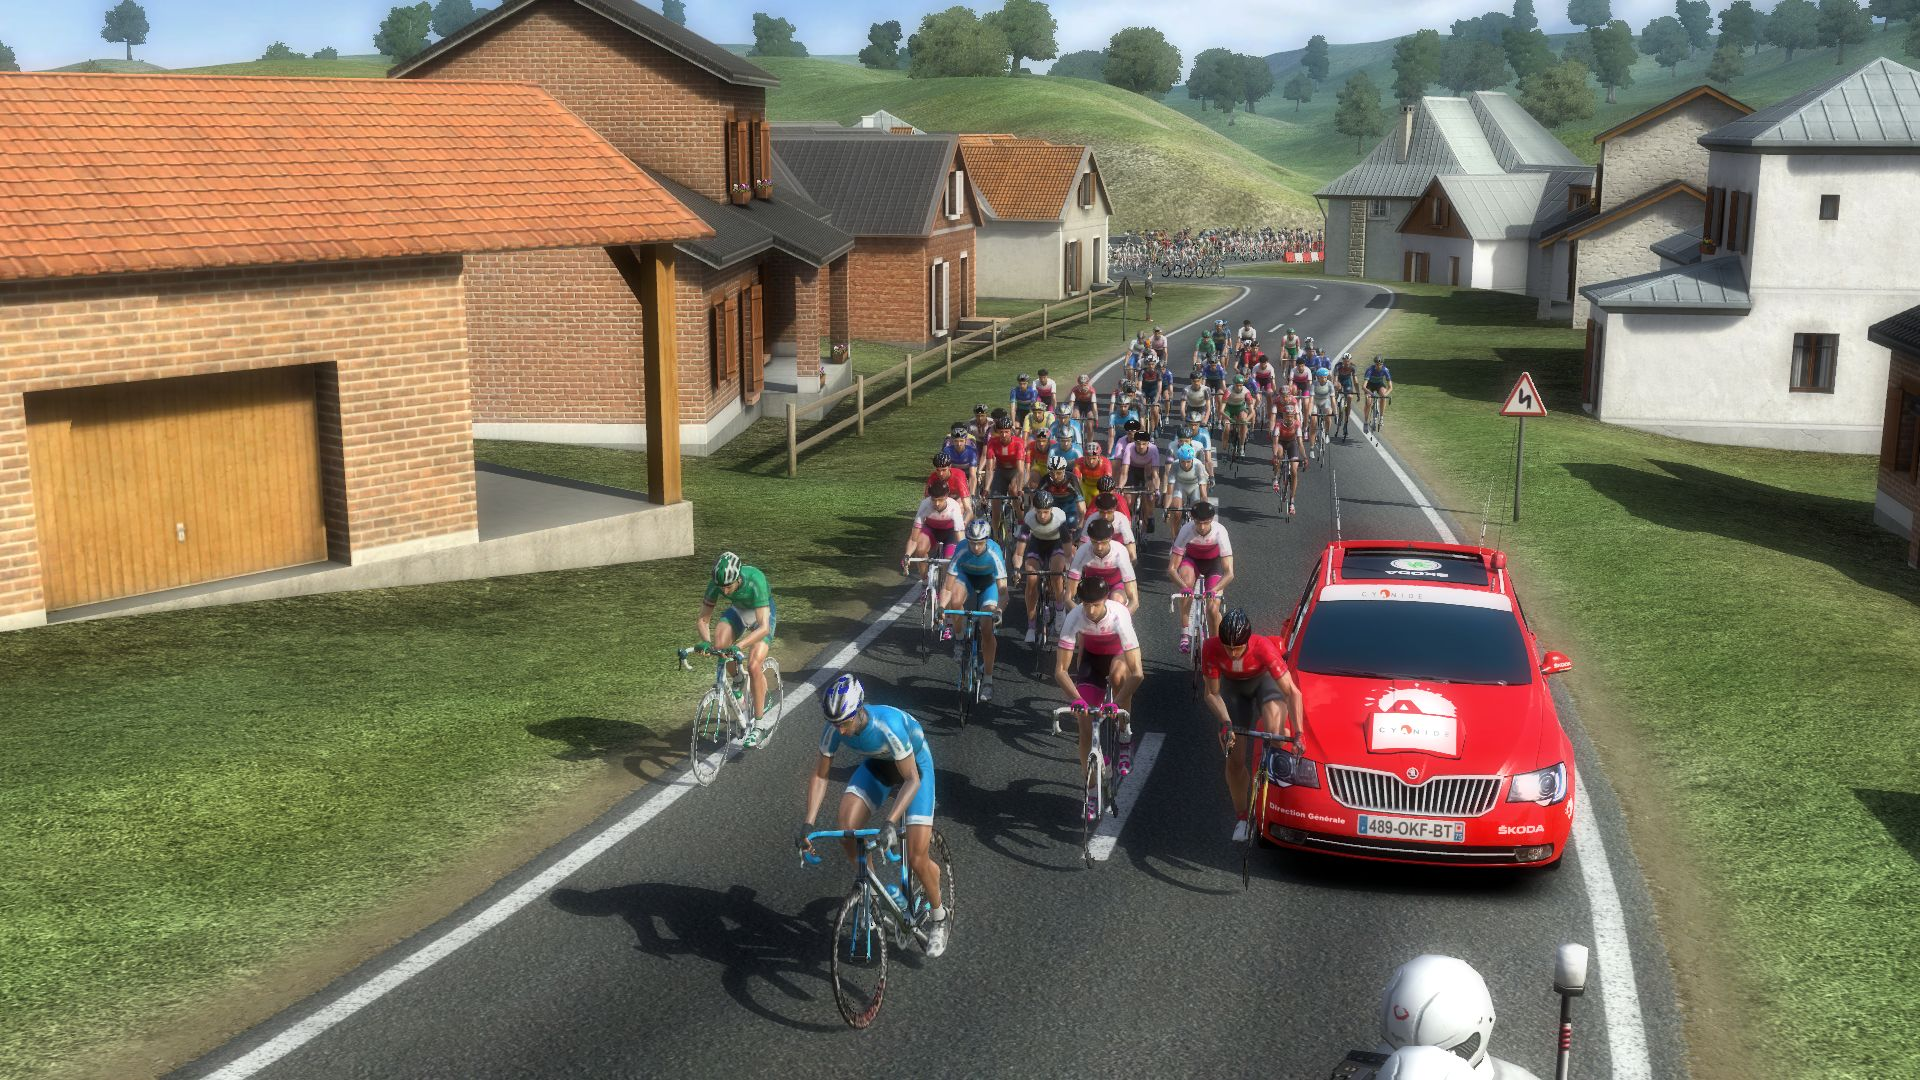 pcmdaily.com/images/mg/2019/Races/Other/NC/GER/GERRR%202.jpg